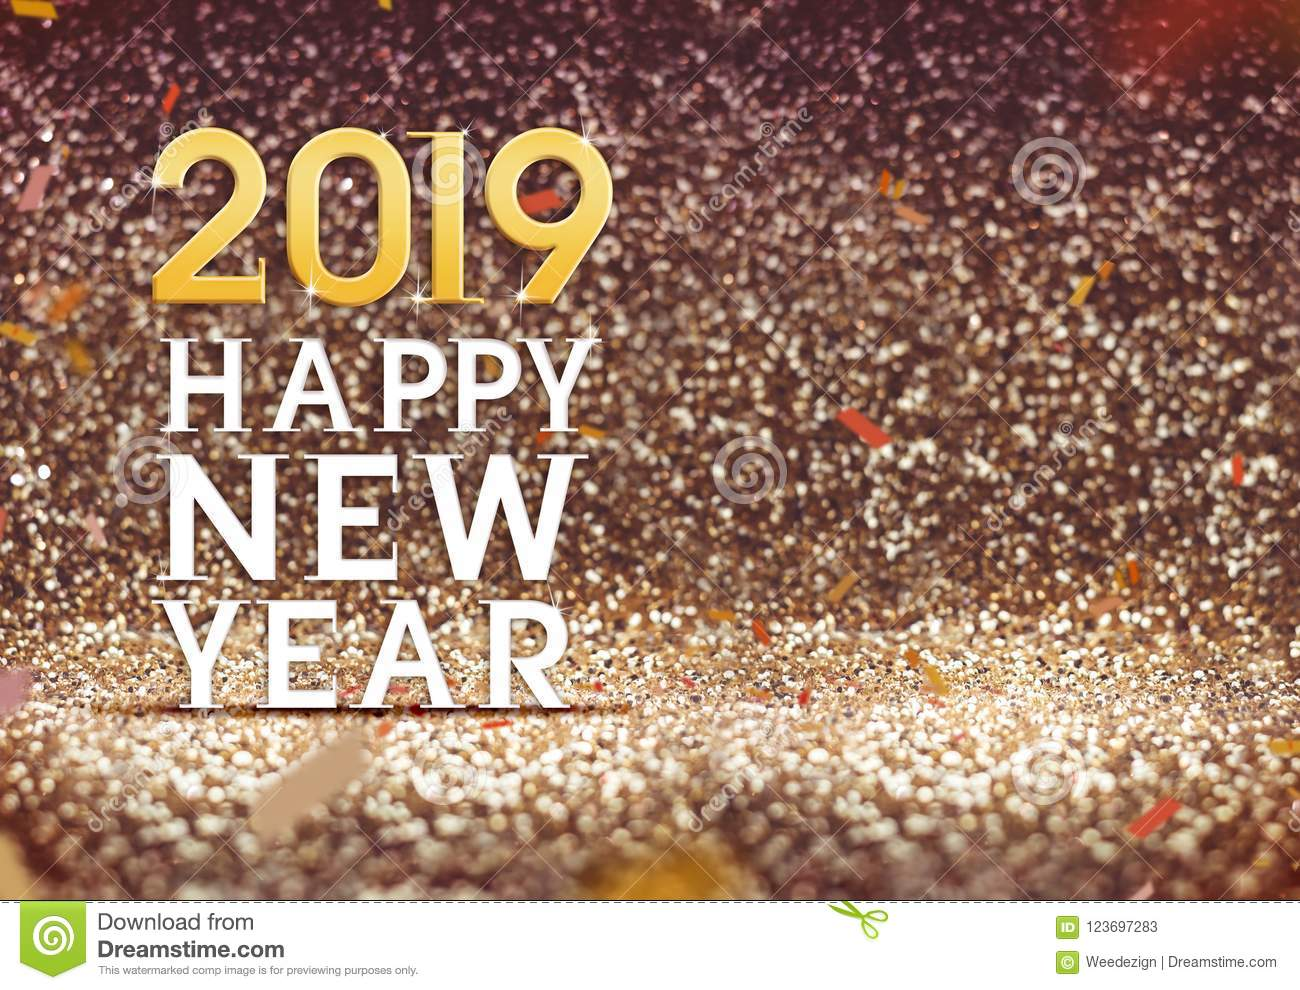 Happy new year 2019 in gold color abstract glitter background h stock image image of blur - New years colors 2019 ...